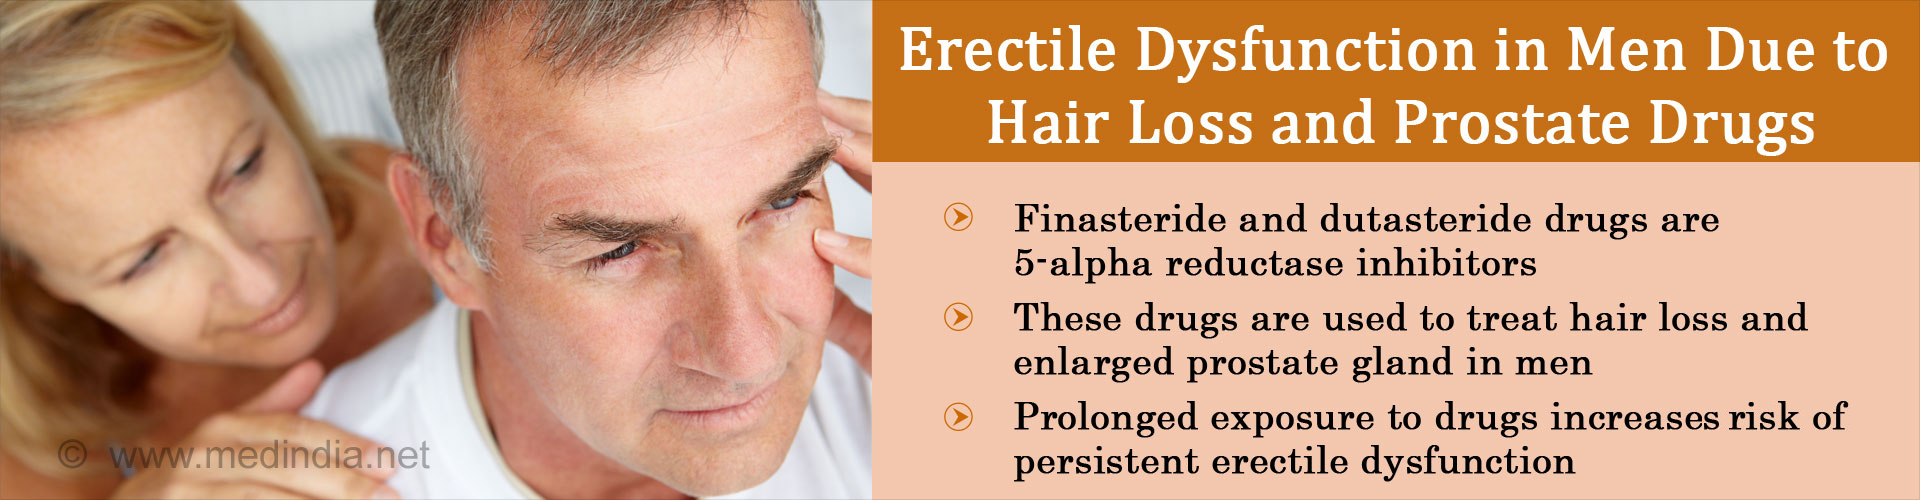 Dutasteride uk hair loss.doc - Hair Loss Prostate Drugs Could Increase Persistent Erectile Dysfunction Risk In Men